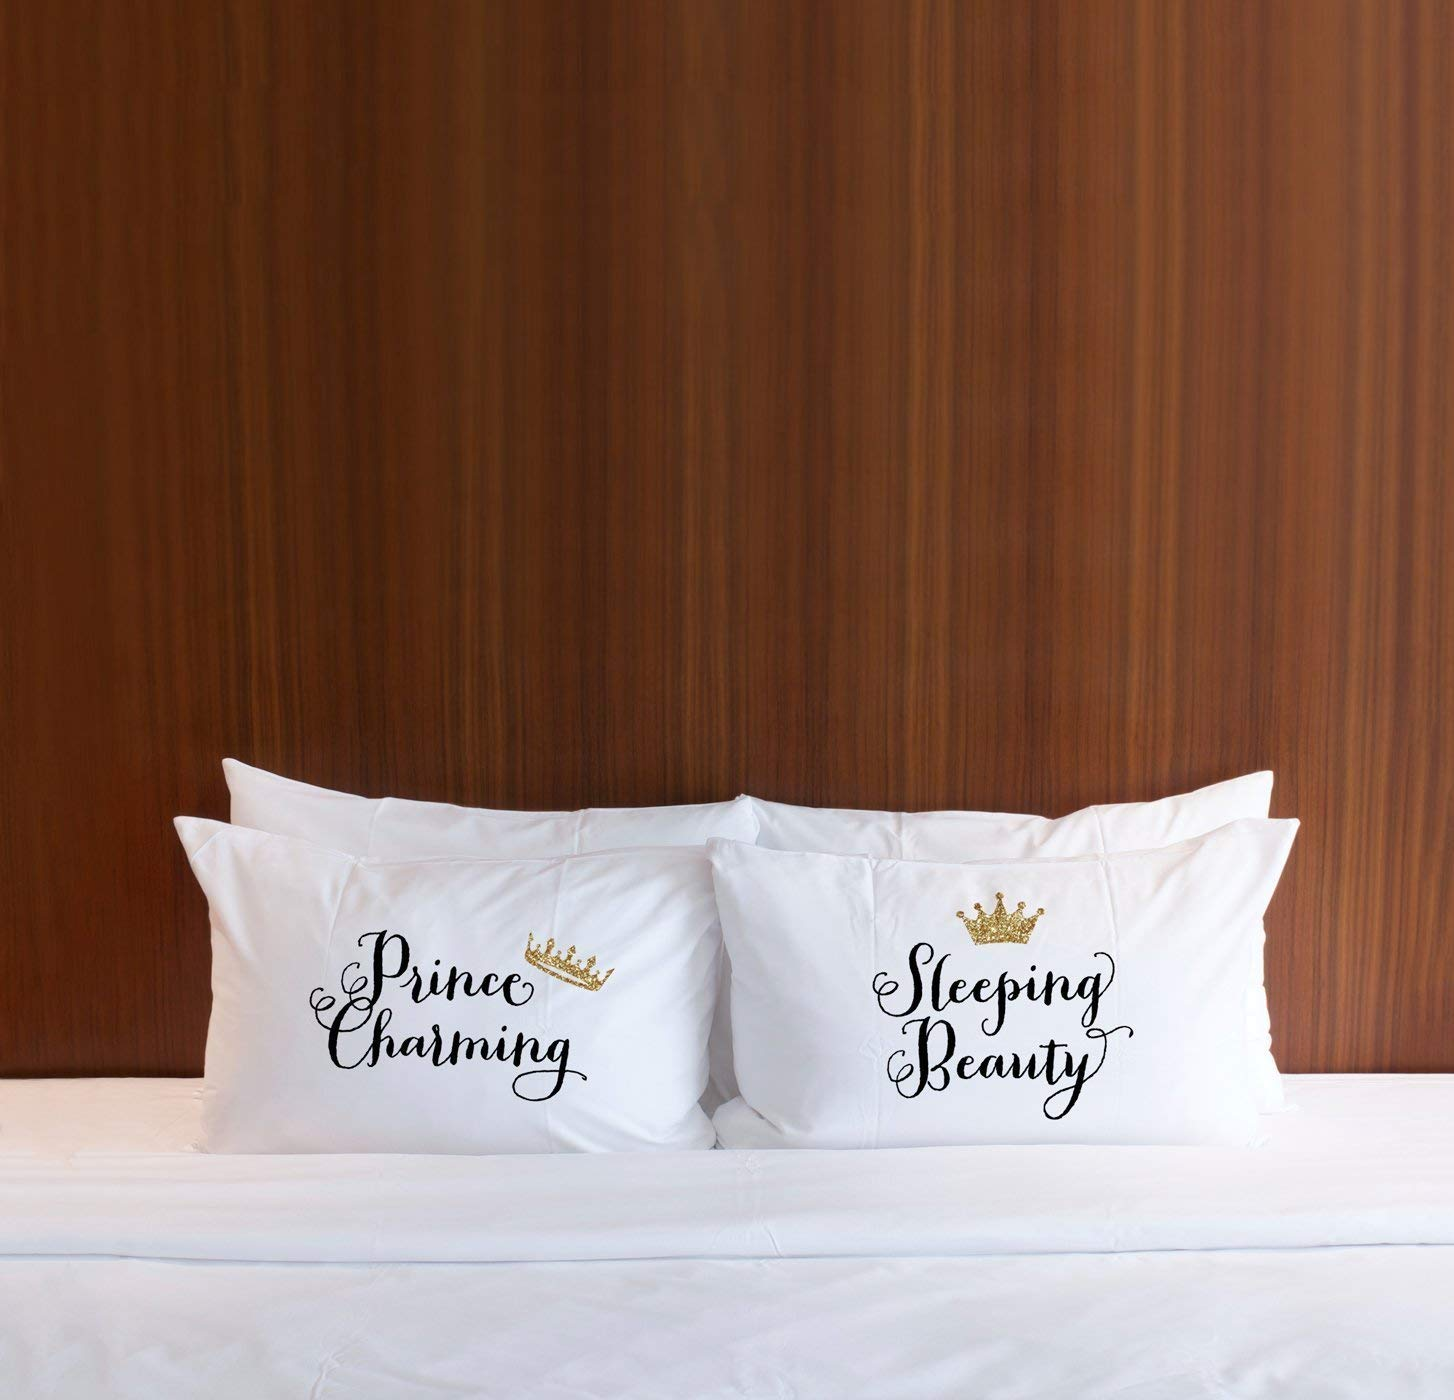 Fairytale Pillowcases Gift for Her or Him Anniversary Wedding Engagement or Bridal Shower Gift Idea for the Couple Standard Pillowcase Queen Size Set of 2